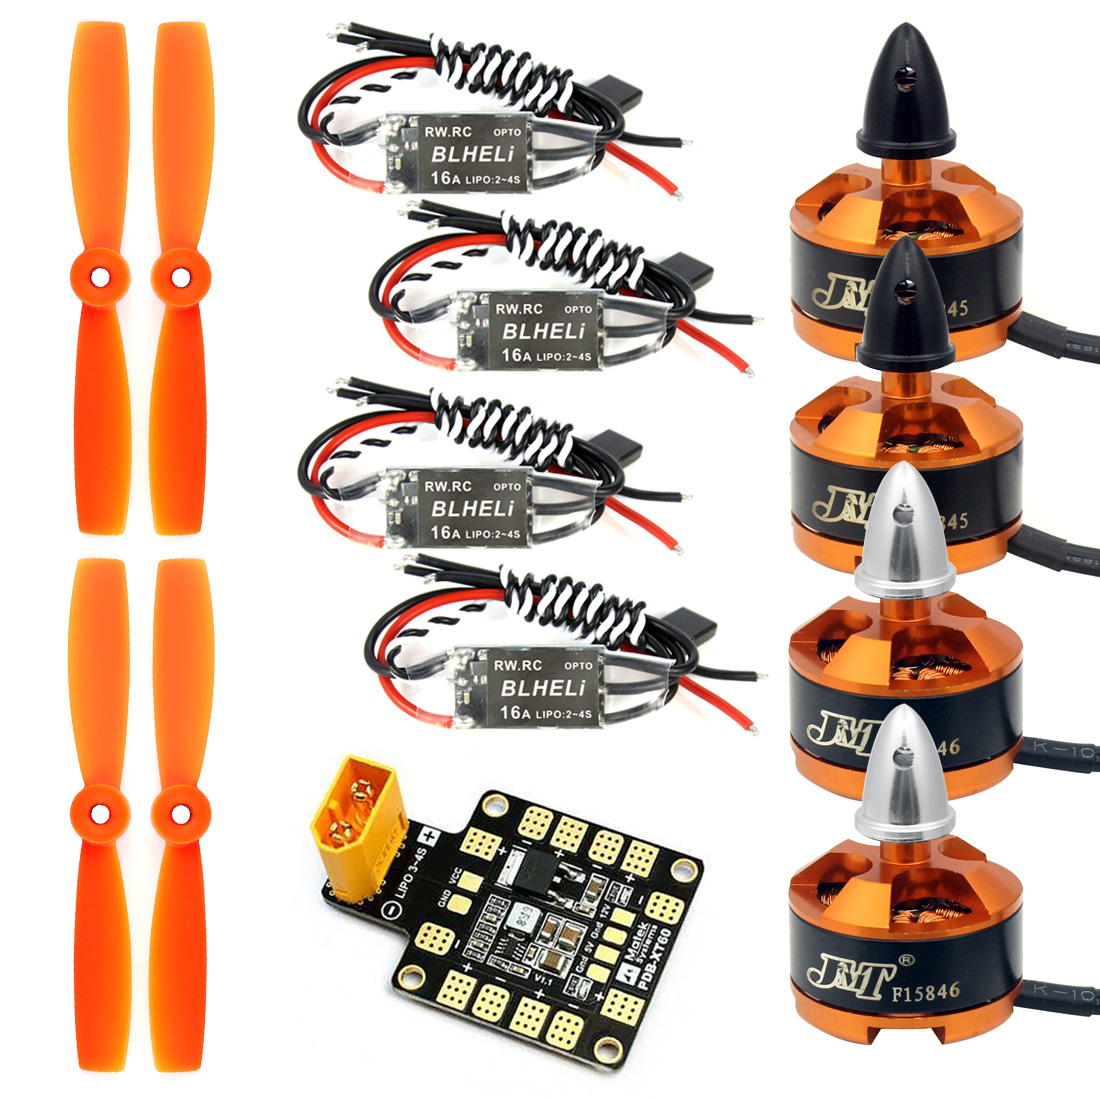 цена на Combo Kit for 250 210 RC Quadcopter : 4x1806 2400KV Brushless Motor+Mini BLHeli OPTO 16A ESC+5045 Propellers CW CCW with PDB BEC